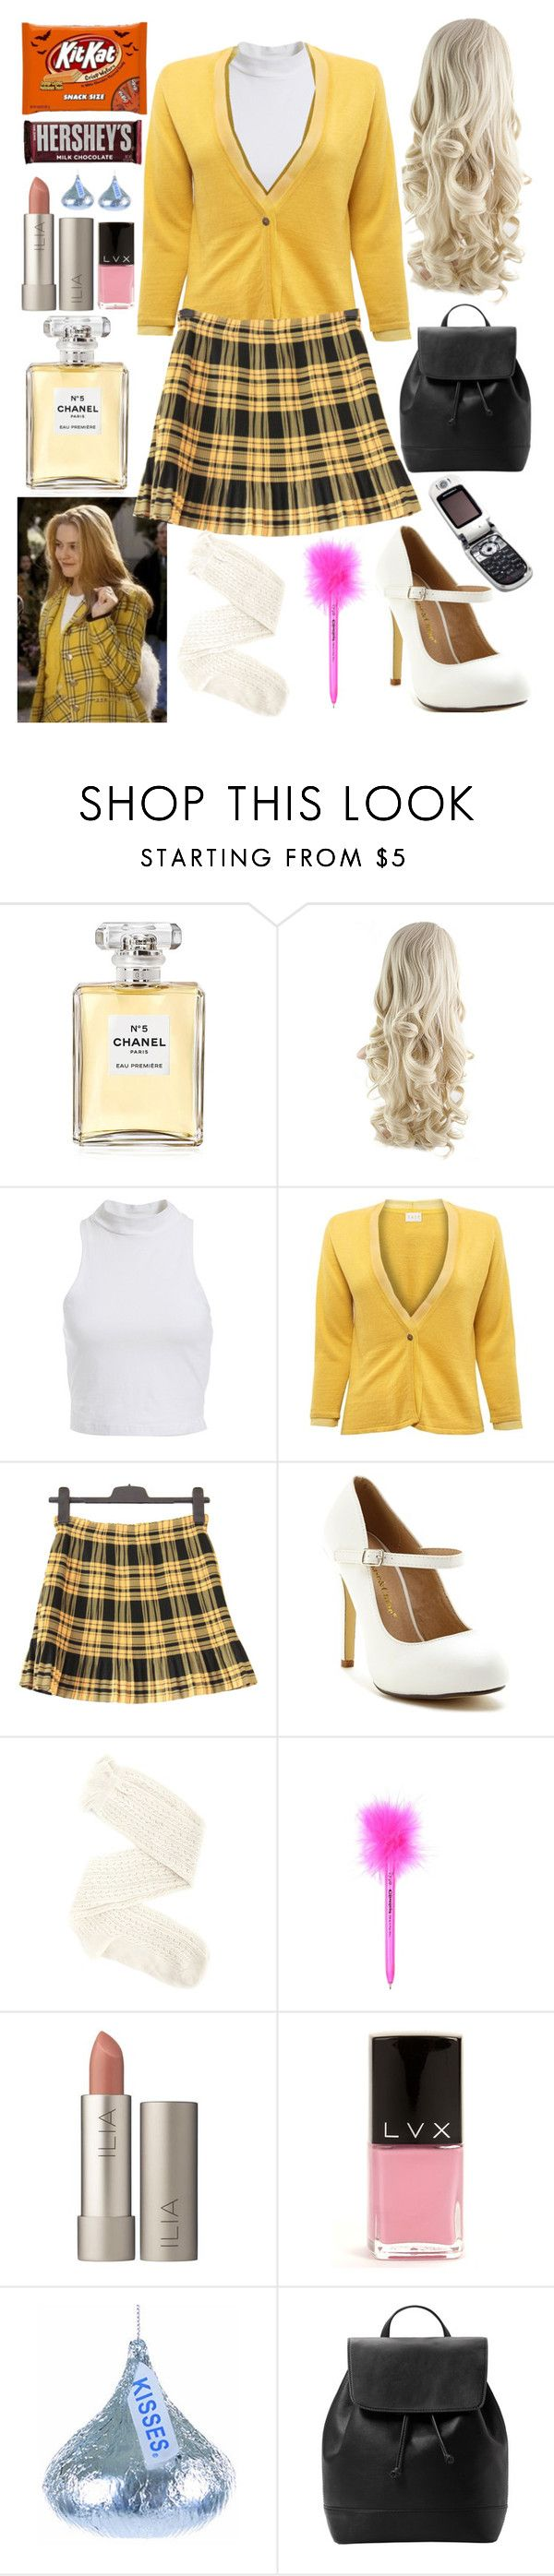 """Cher from clueless costume"" by chloe12801 ❤ liked on Polyvore featuring Mode, Chanel, Bardot, EAST, Chase & Chloe, Charlotte Russe, Ilia, LVX, Hershey's und MANGO"